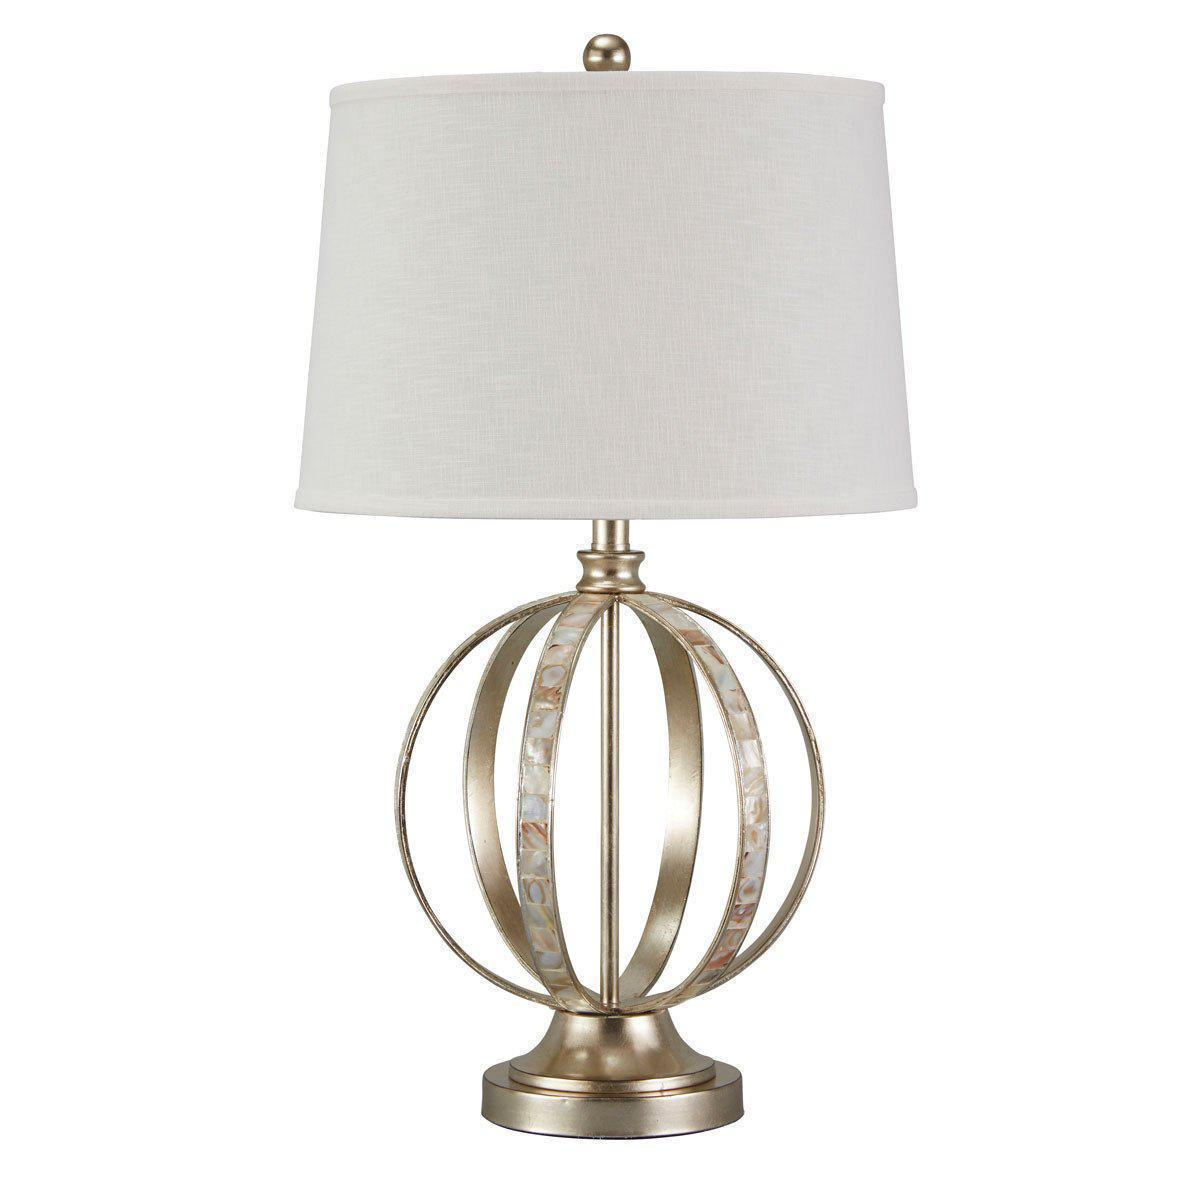 Shaunnea Table Lamp